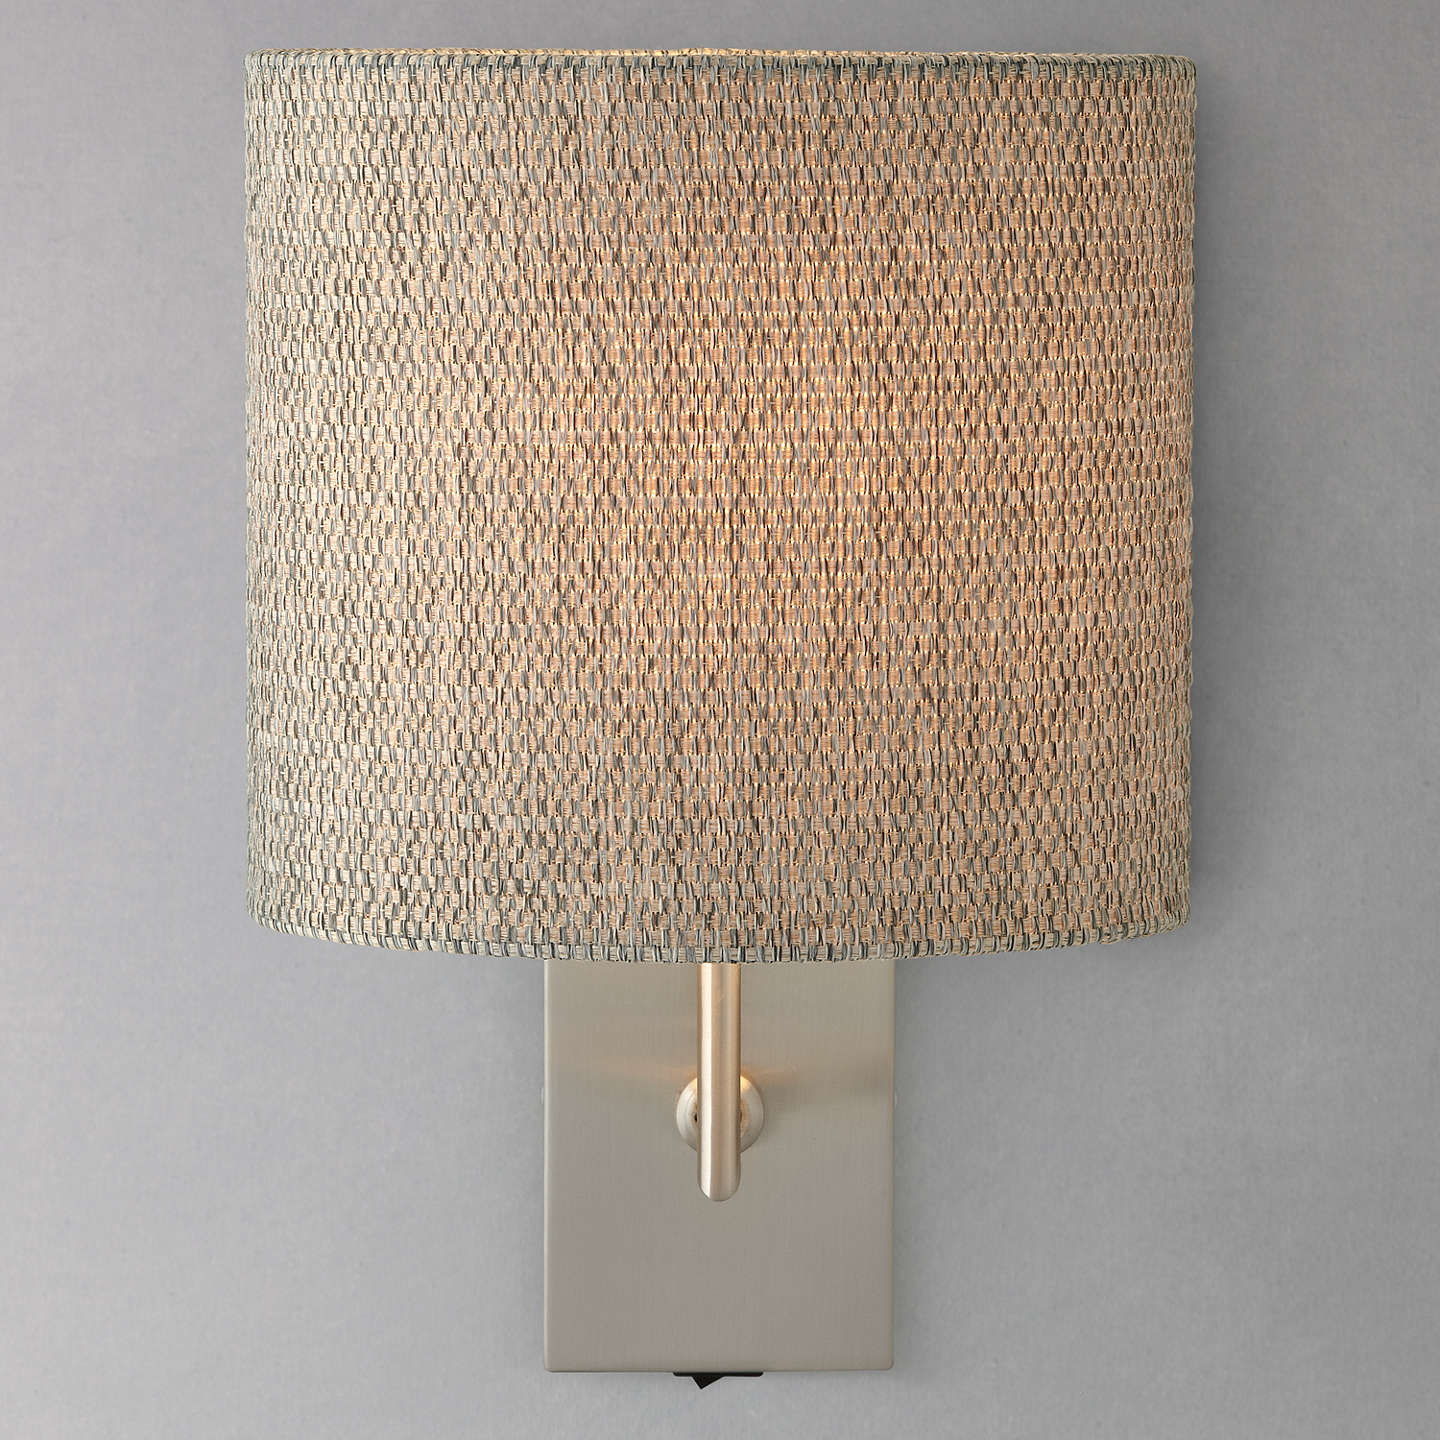 John lewis lorenzo textured shade wall light at john lewis buyjohn lewis lorenzo textured shade wall light online at johnlewis aloadofball Choice Image